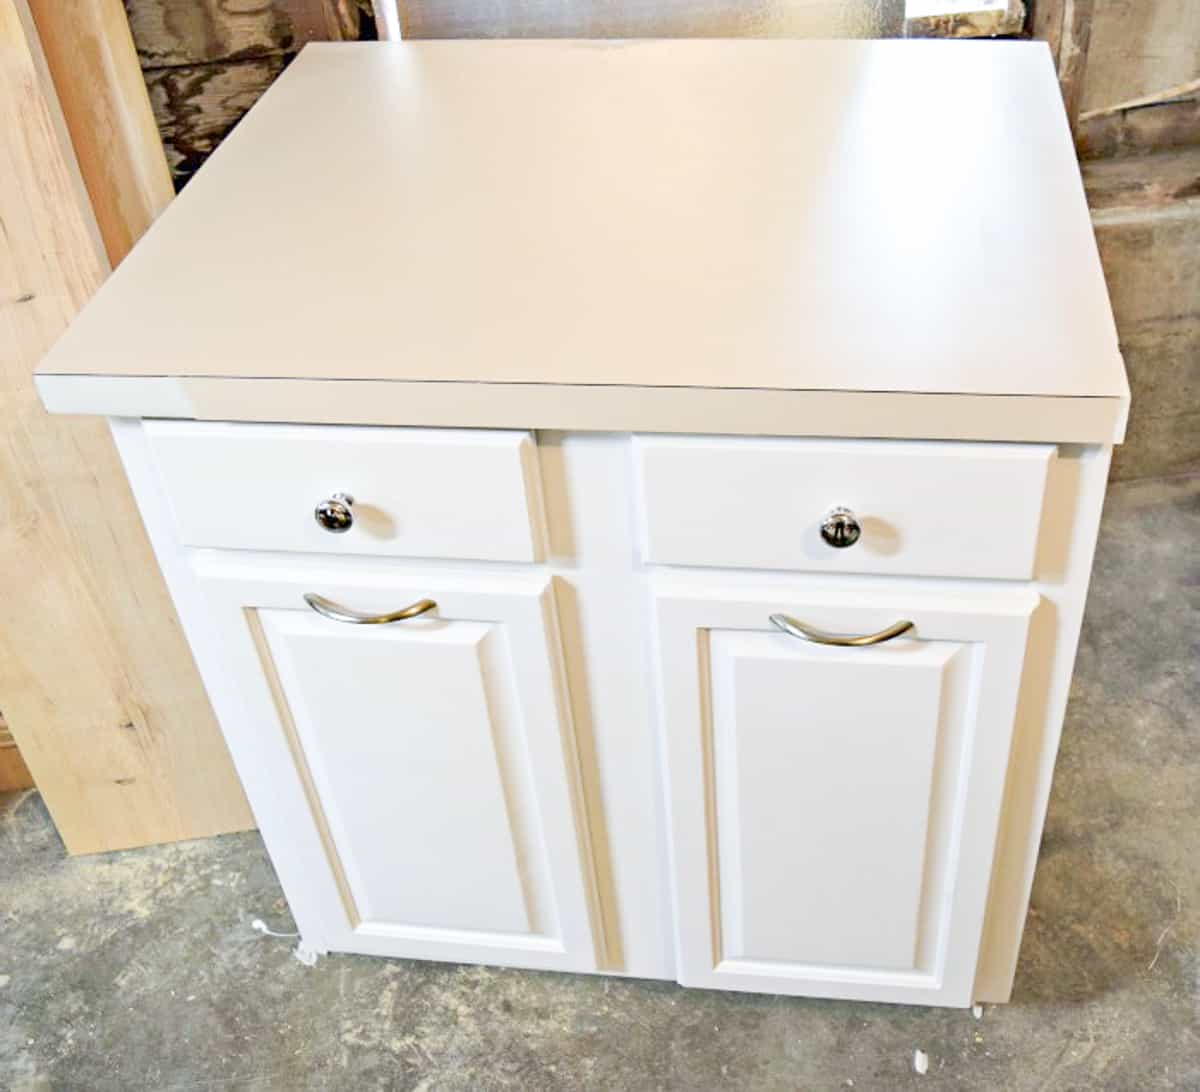 repaired formica countertop on used kitchen cabinets